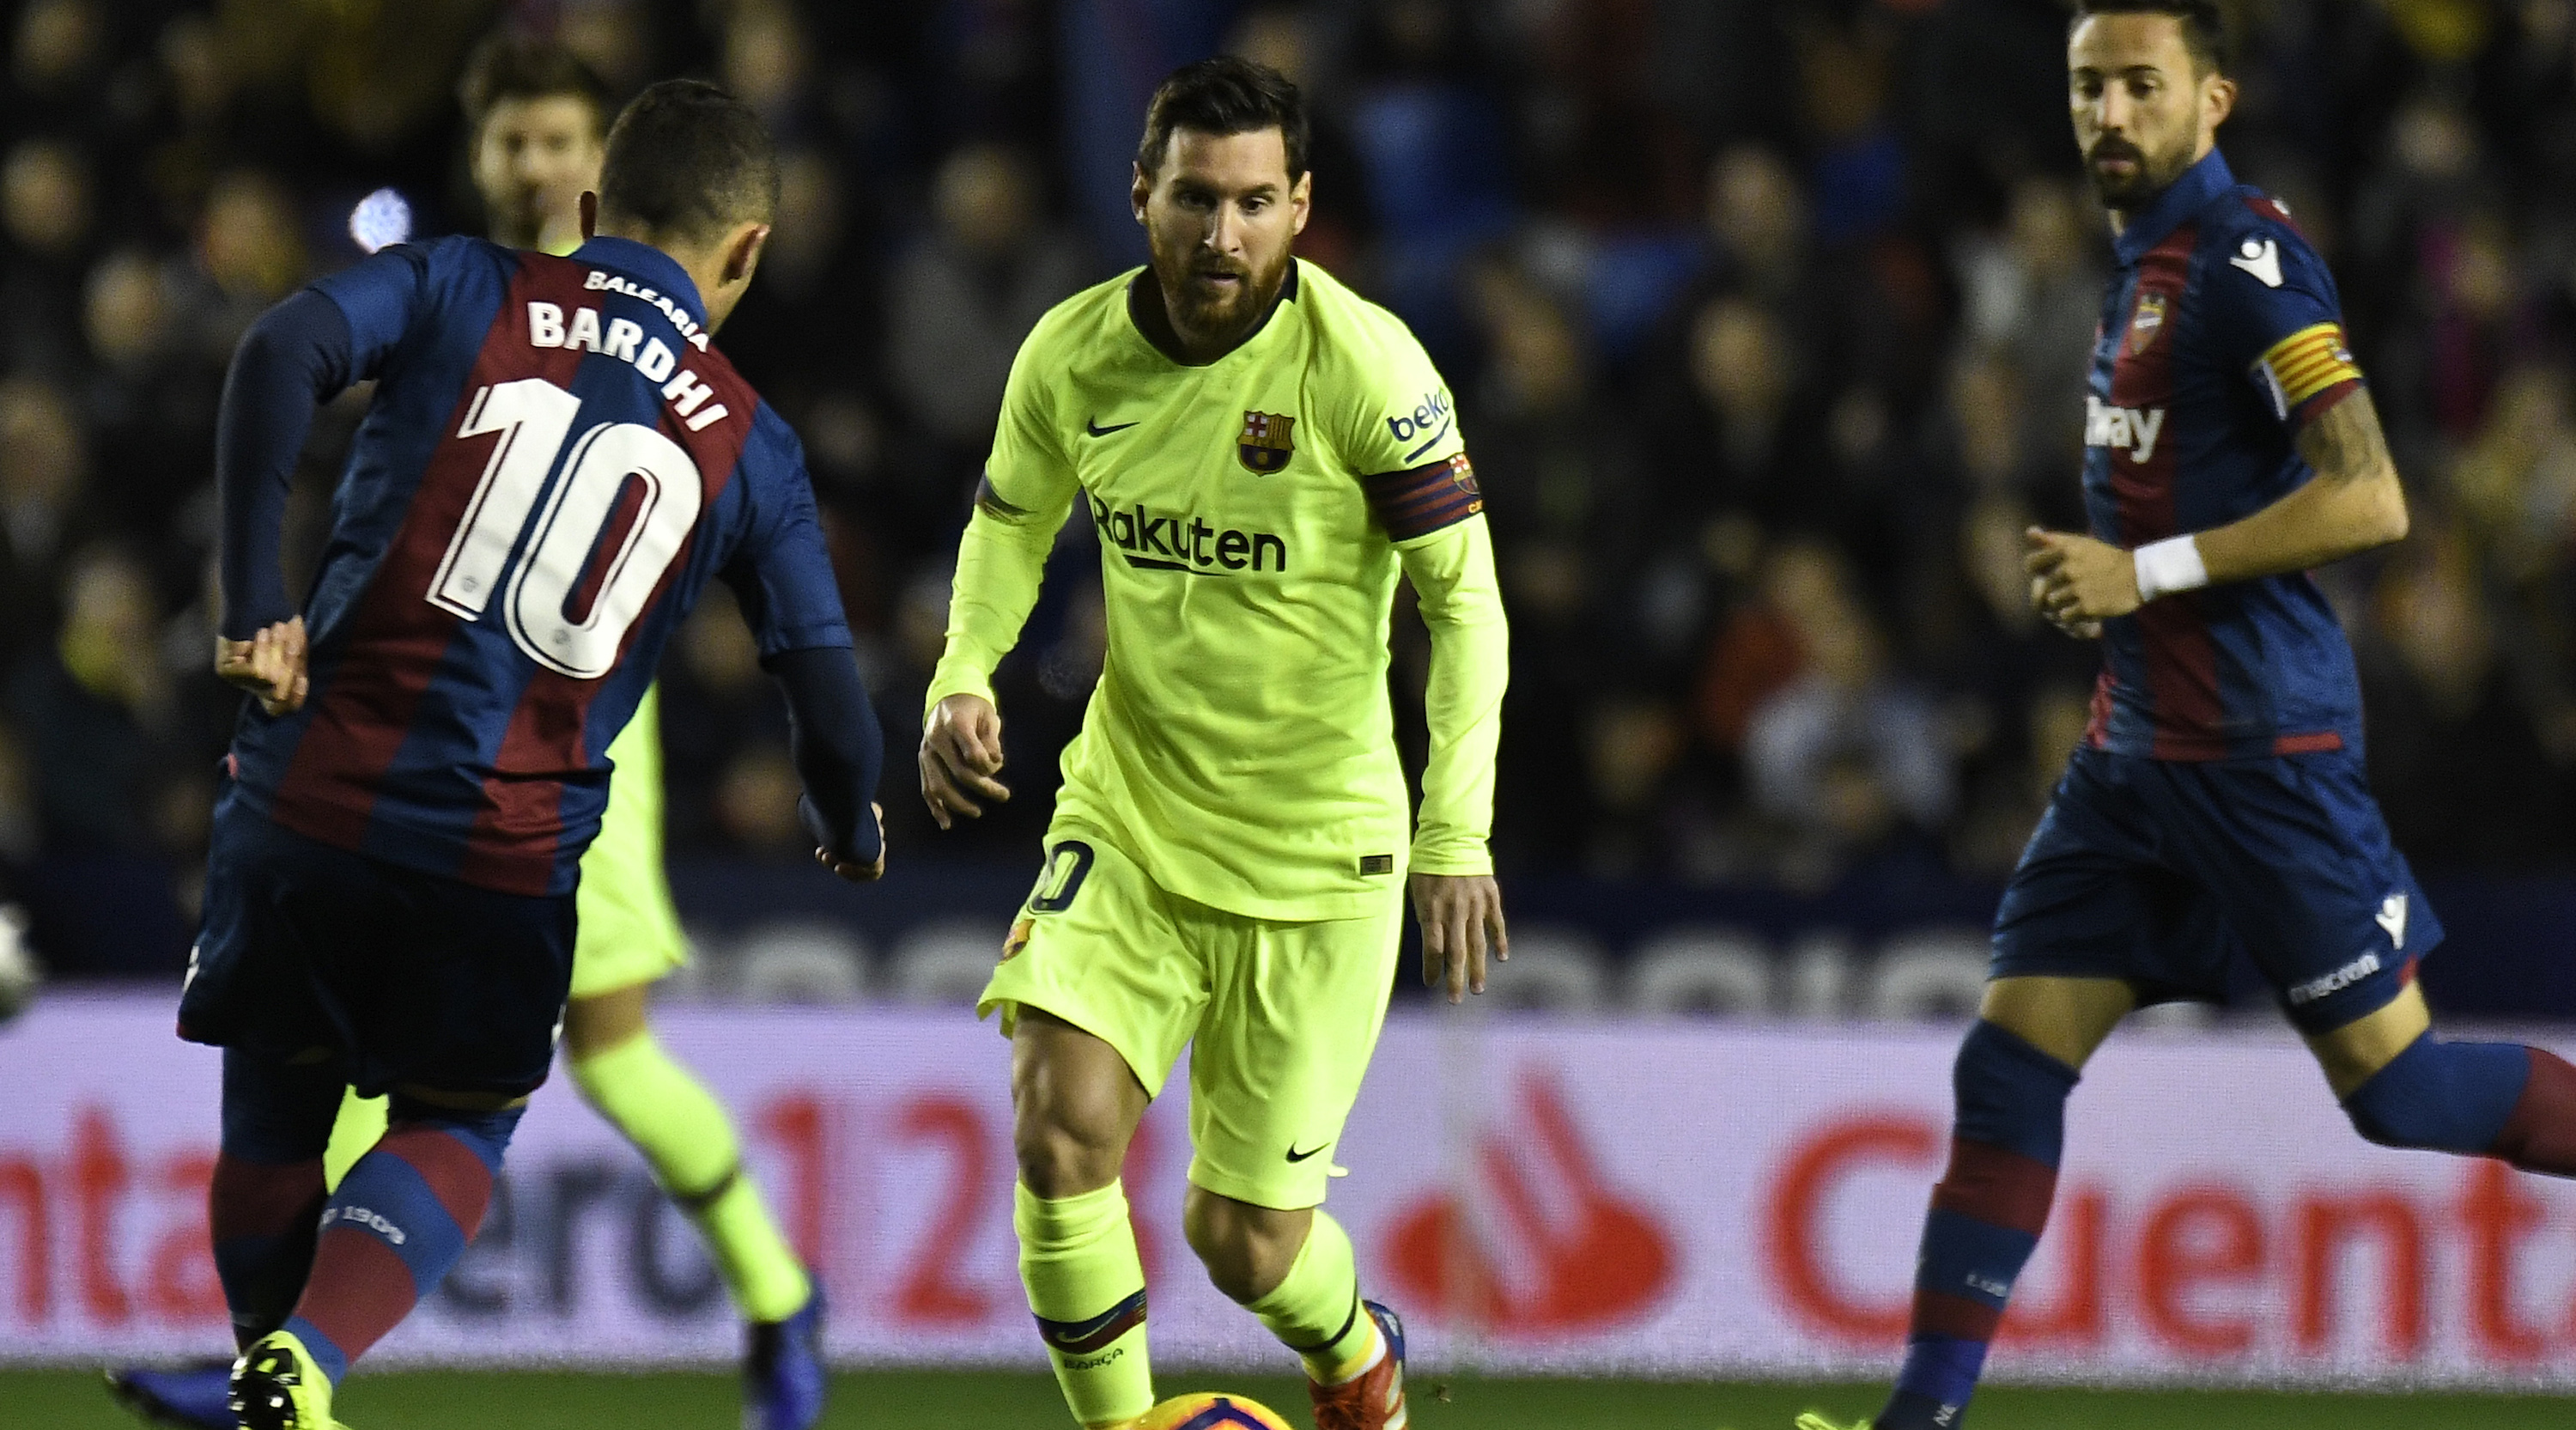 Levante's Macedonian midfielder Enis Bardhi (L) vies with Barcelona's Argentinian forward Lionel Messi during the Spanish League football match between Levante and Barcelona at the Ciutat de Valencia stadium in Valencia on December 16, 2018. (Photo by JOSE JORDAN / AFP) (Photo credit should read JOSE JORDAN/AFP/Getty Images)